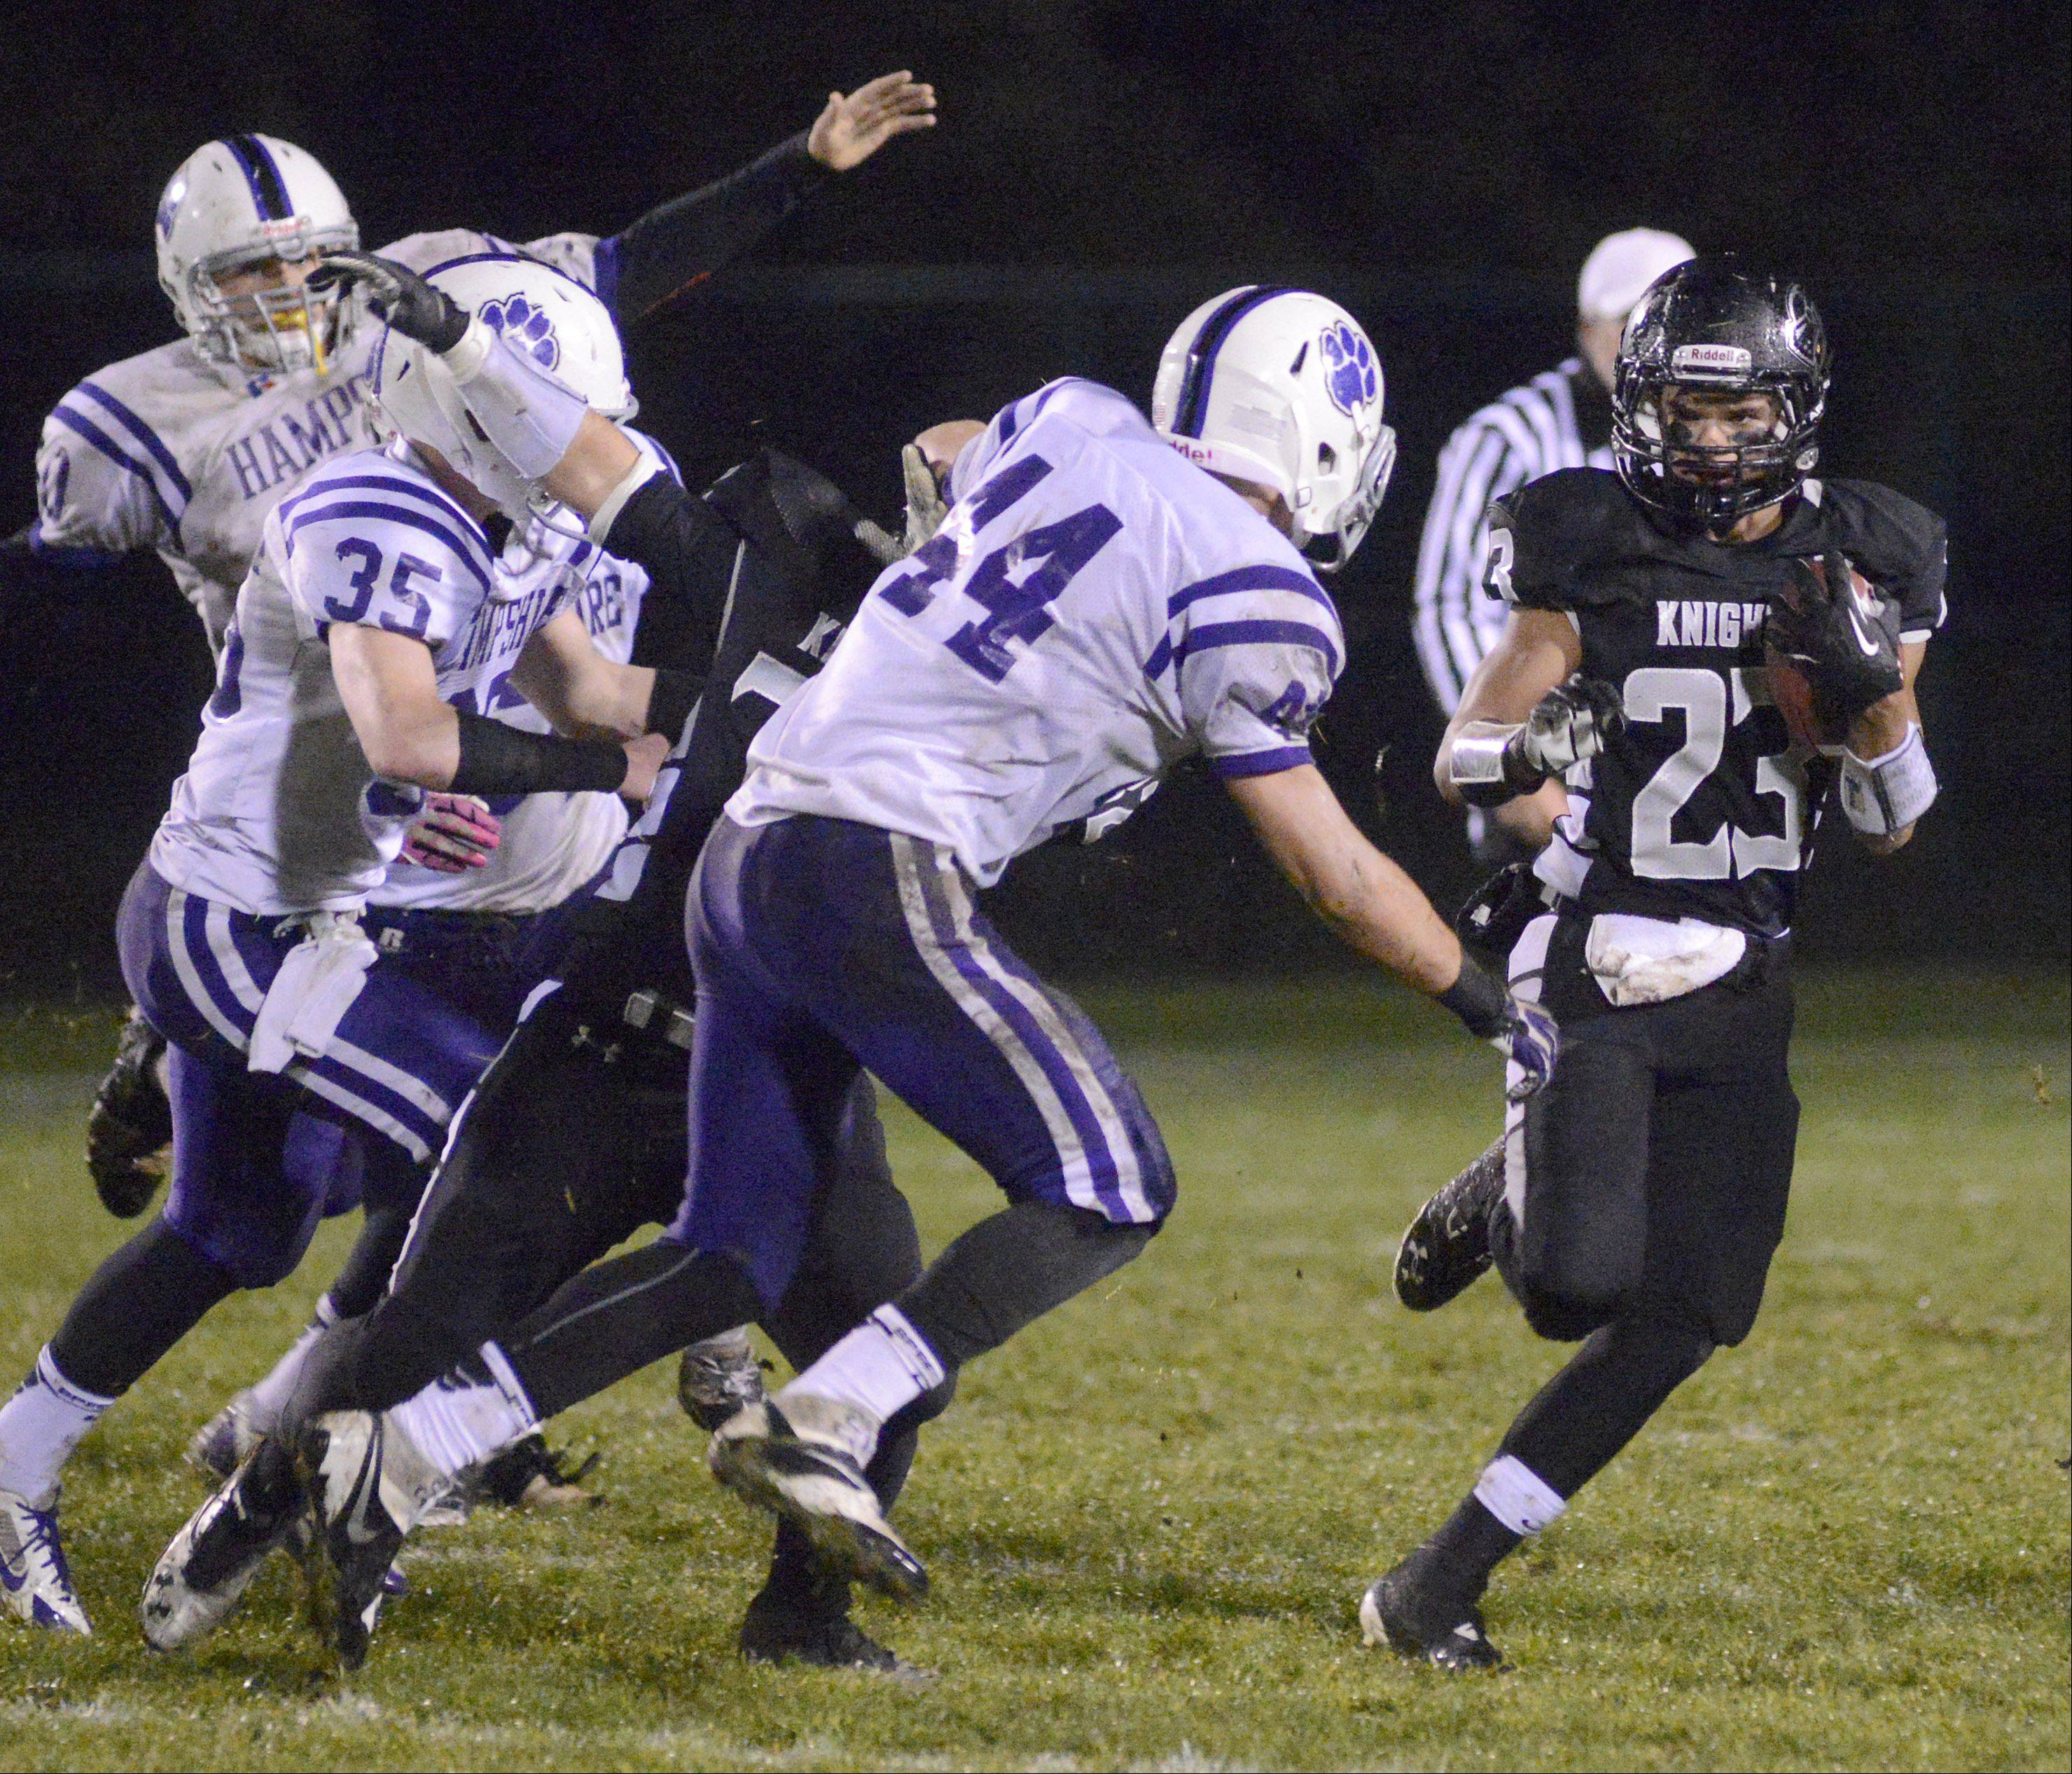 Kaneland's Gio Regalado steers clear of Hampshire's Mason Fleury in the first quarter .